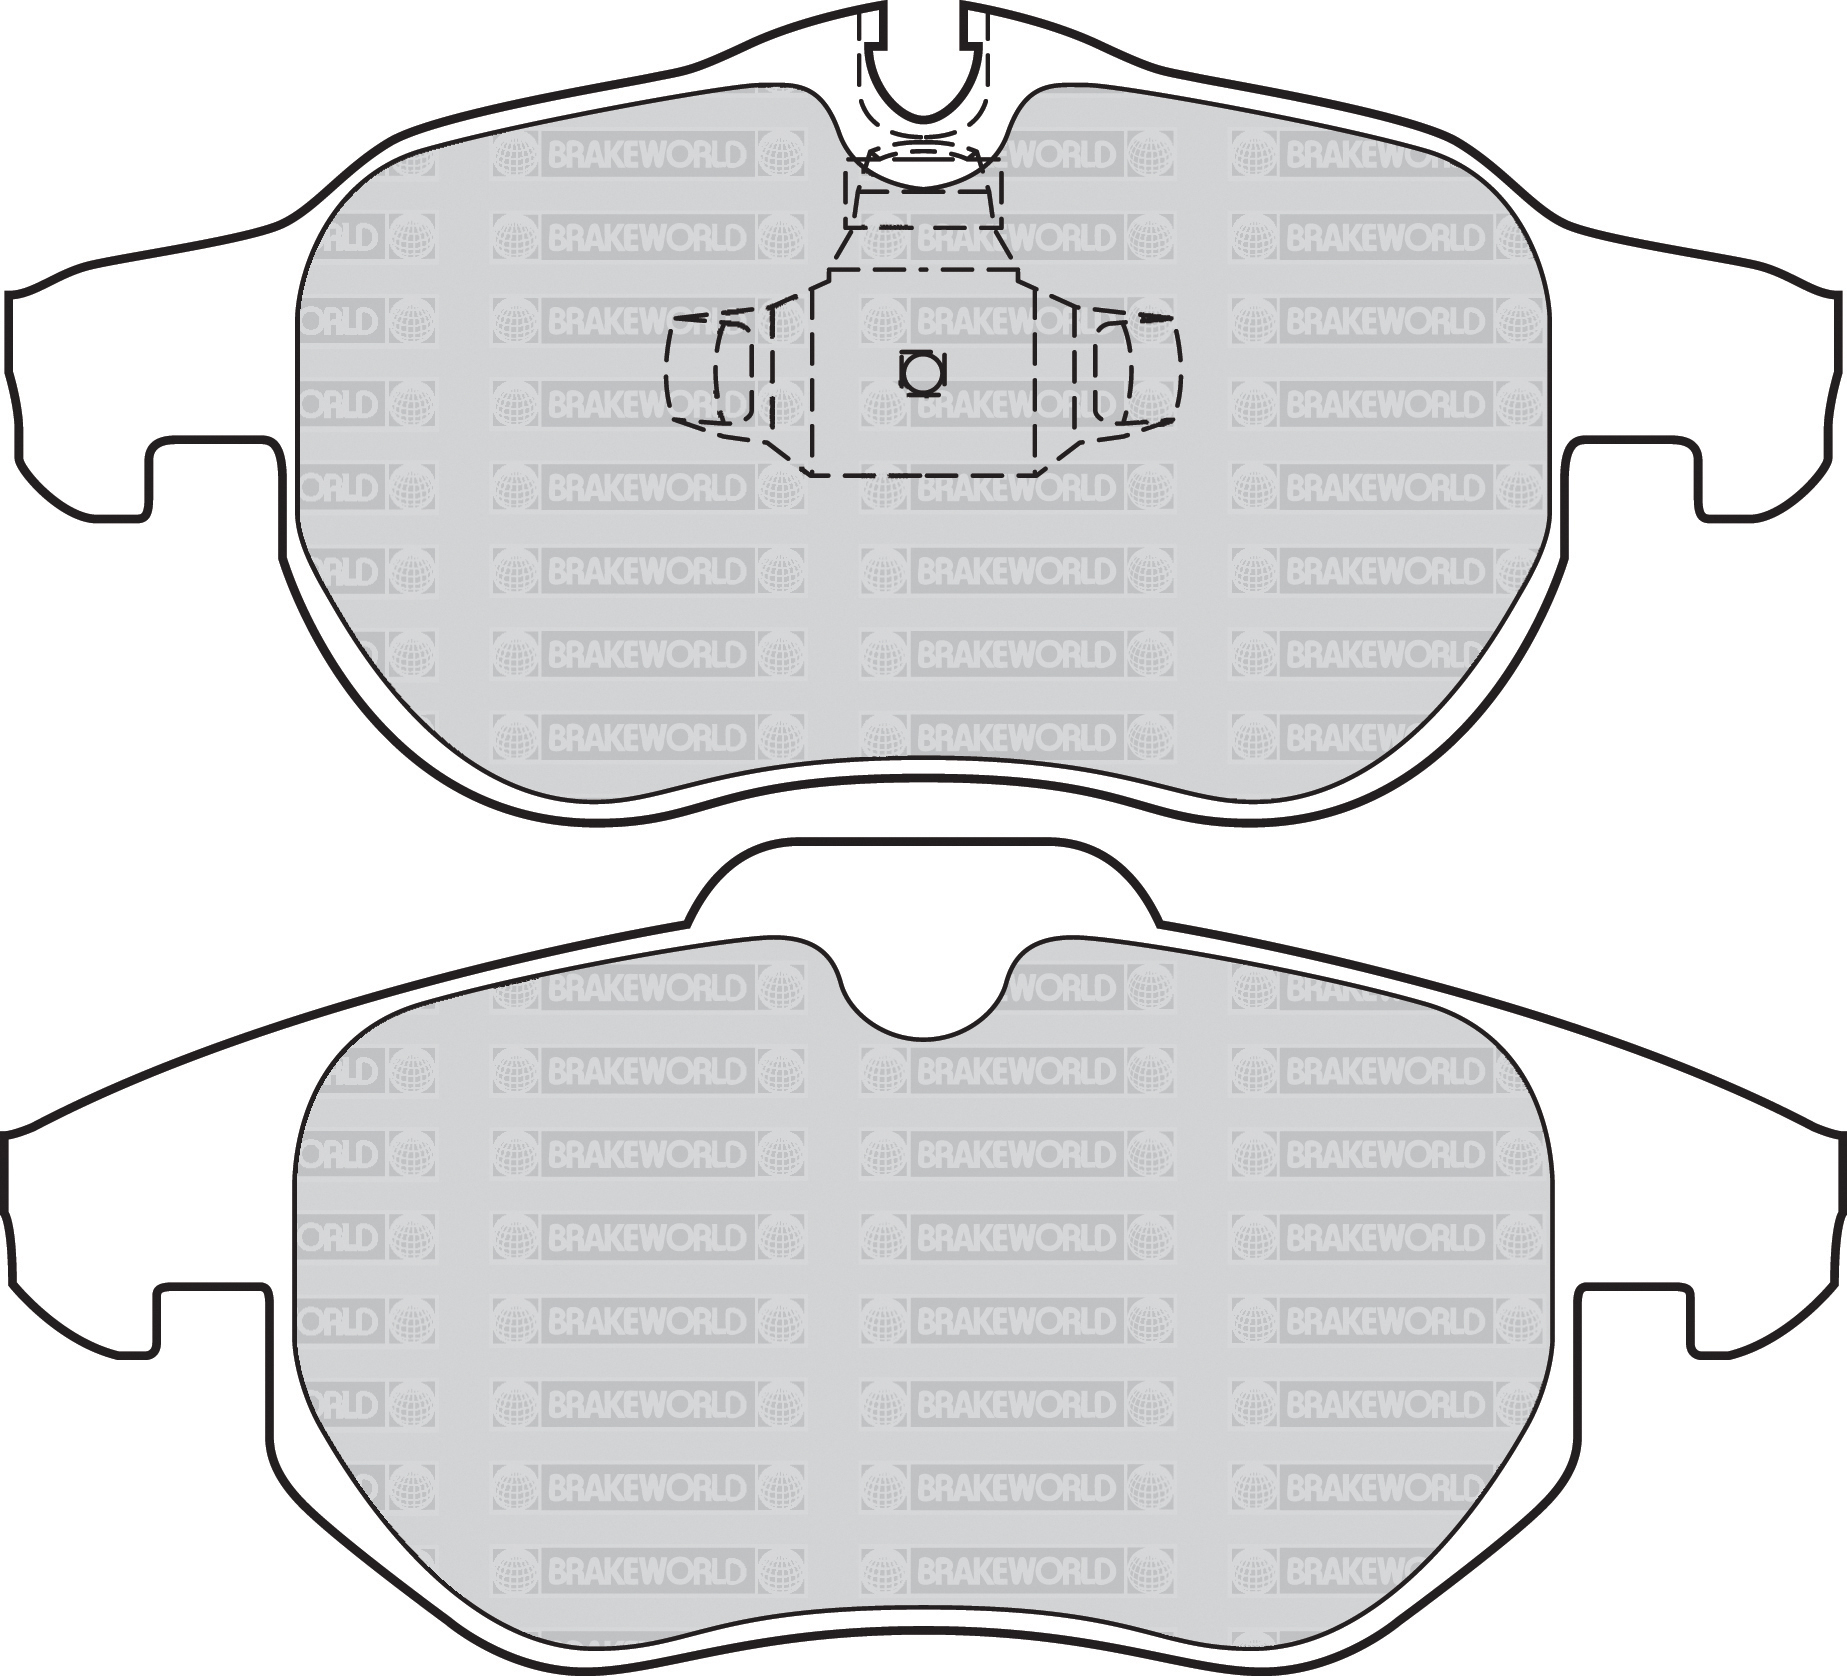 OEM SPEC FRONT AND REAR PADS FOR SAAB 9-3 1.9 TD 150 BHP 2004-11